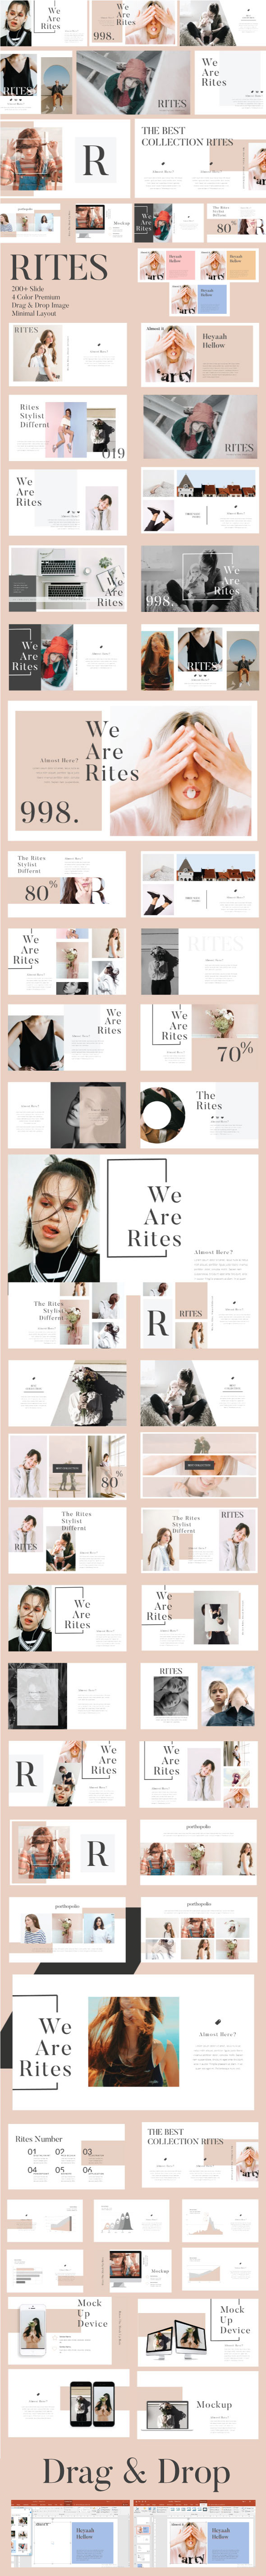 Rites Creative Presentation Template - Creative PowerPoint Templates